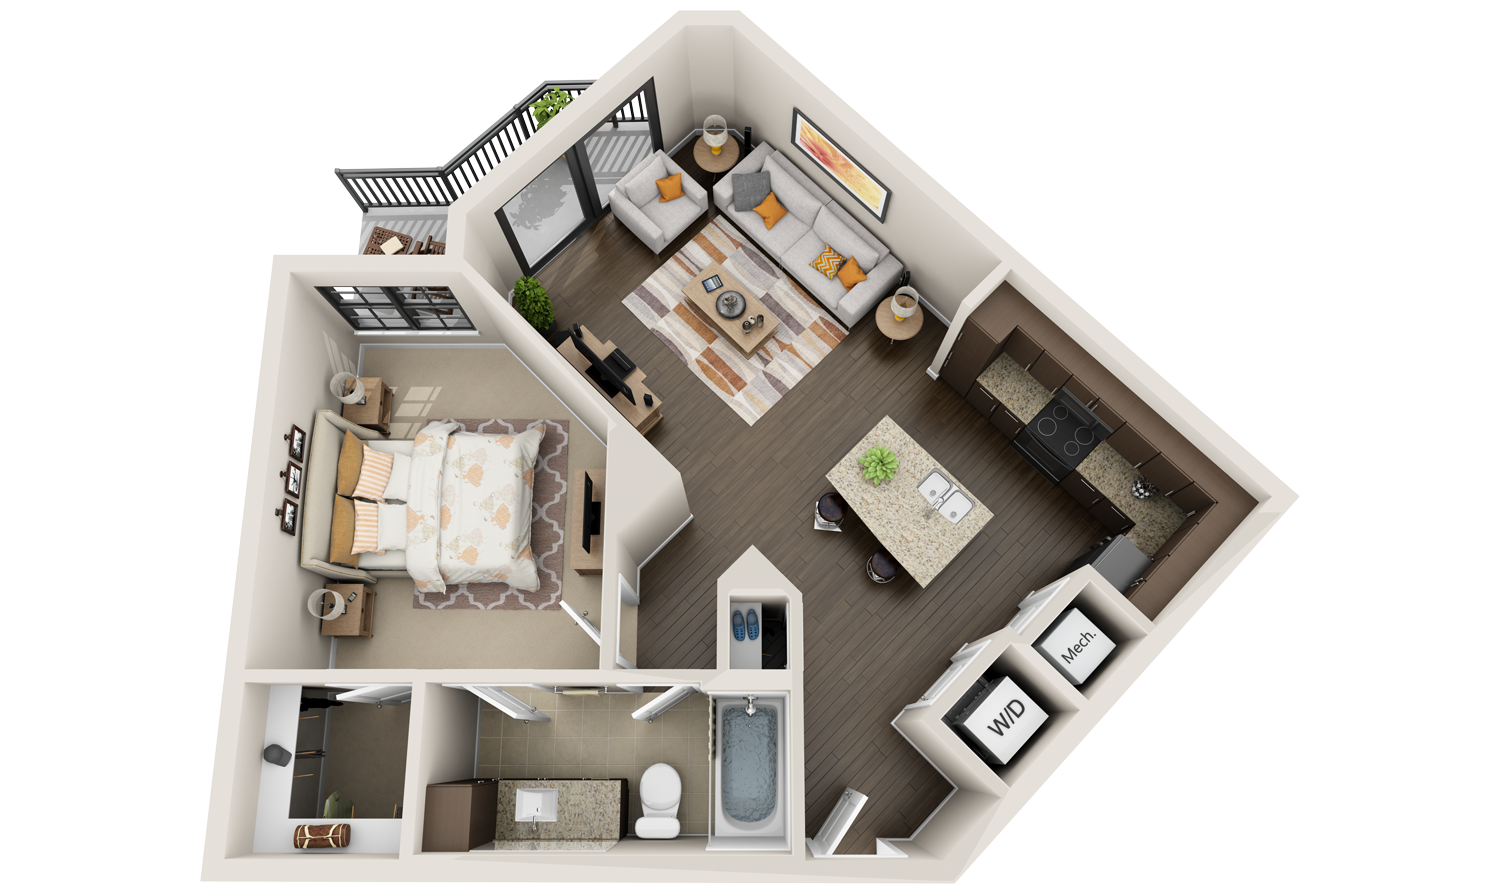 Best 3d floor plans for apartments virtual tours we for Apartment design plan